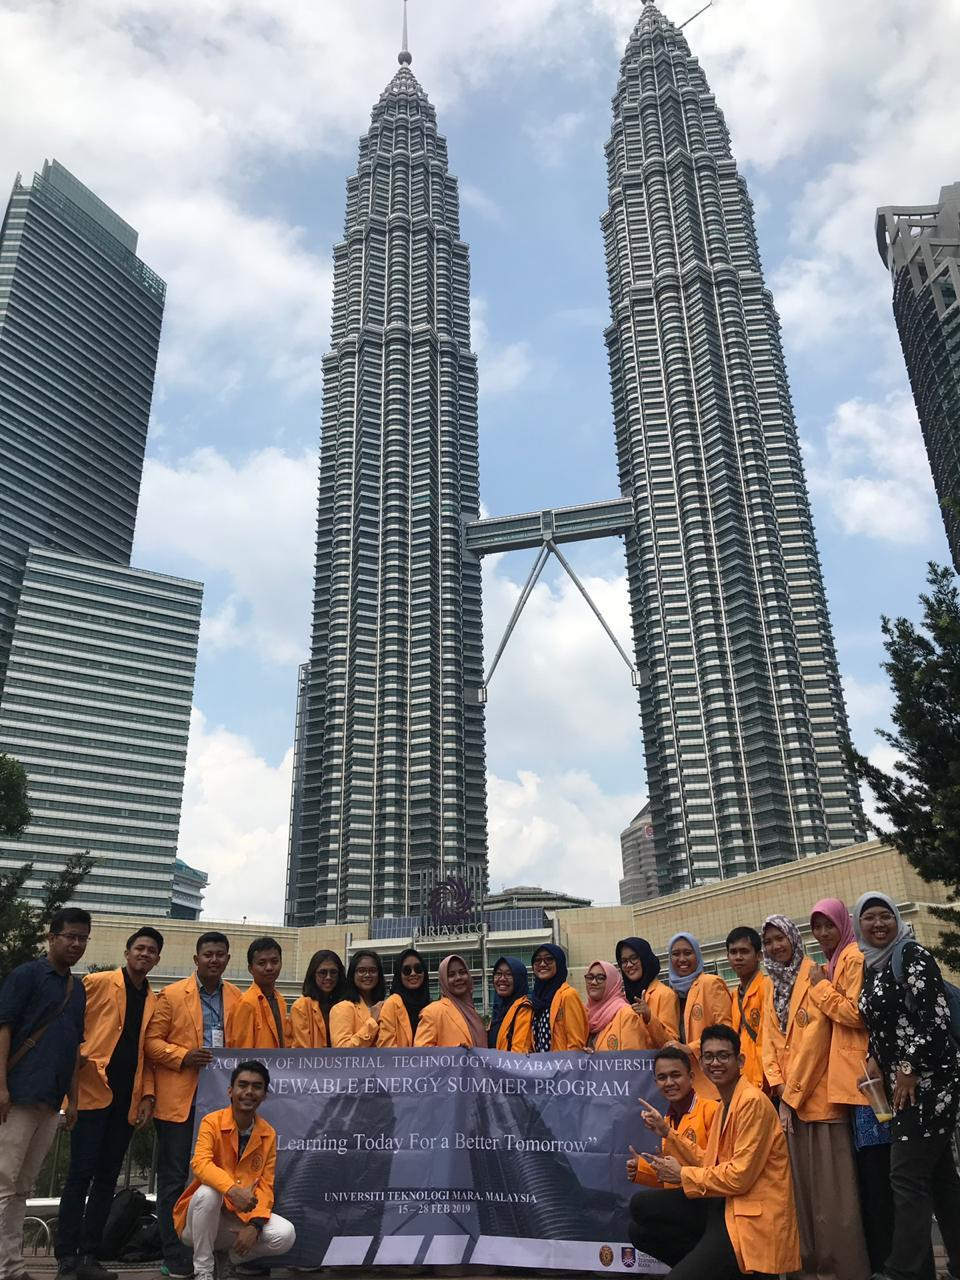 FTI JAYABAYA SENT 18 STUDENT TO JOIN SUMMER PROGRAM 2019 TO UNIVERSITI TEKNOLOGI MARA (UiTM) MALAYSIA